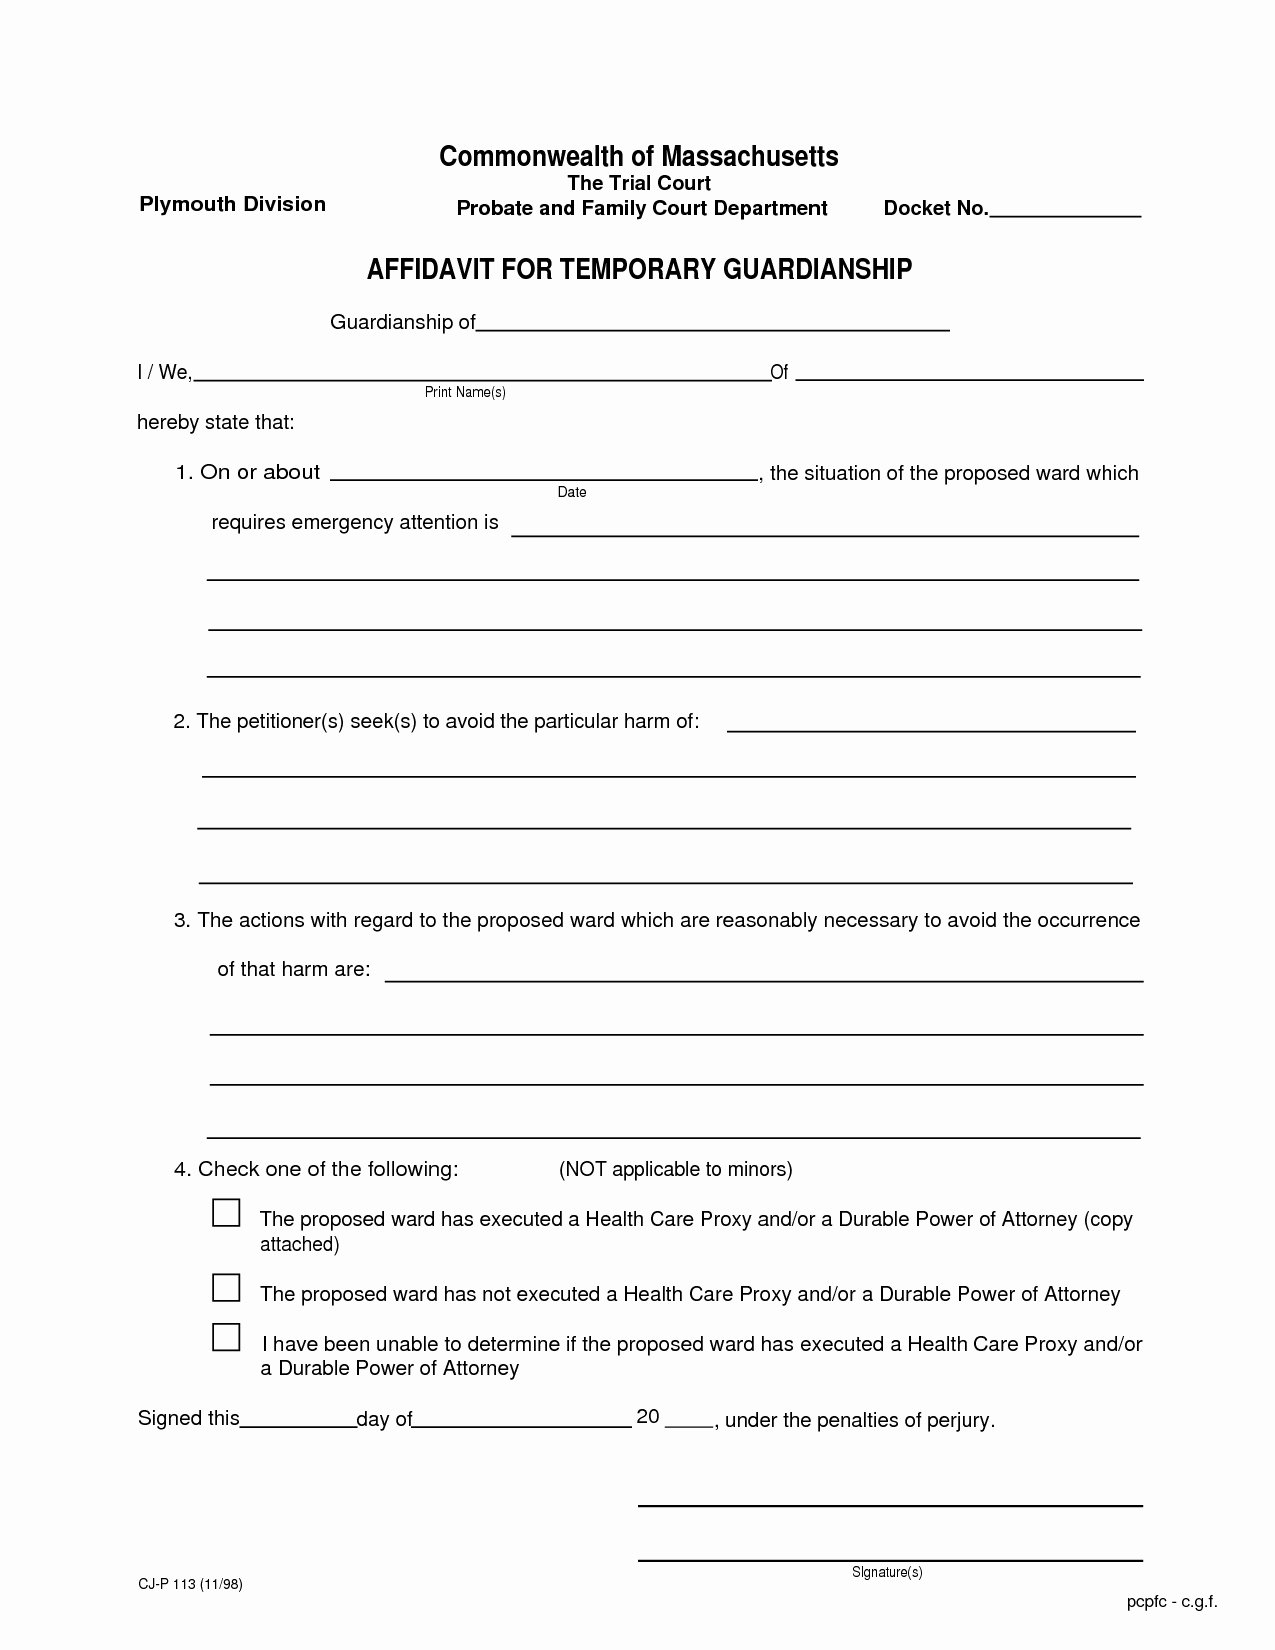 Free Temporary Guardianship form Template Awesome Legal Temporary Child Custody Agreement form Id